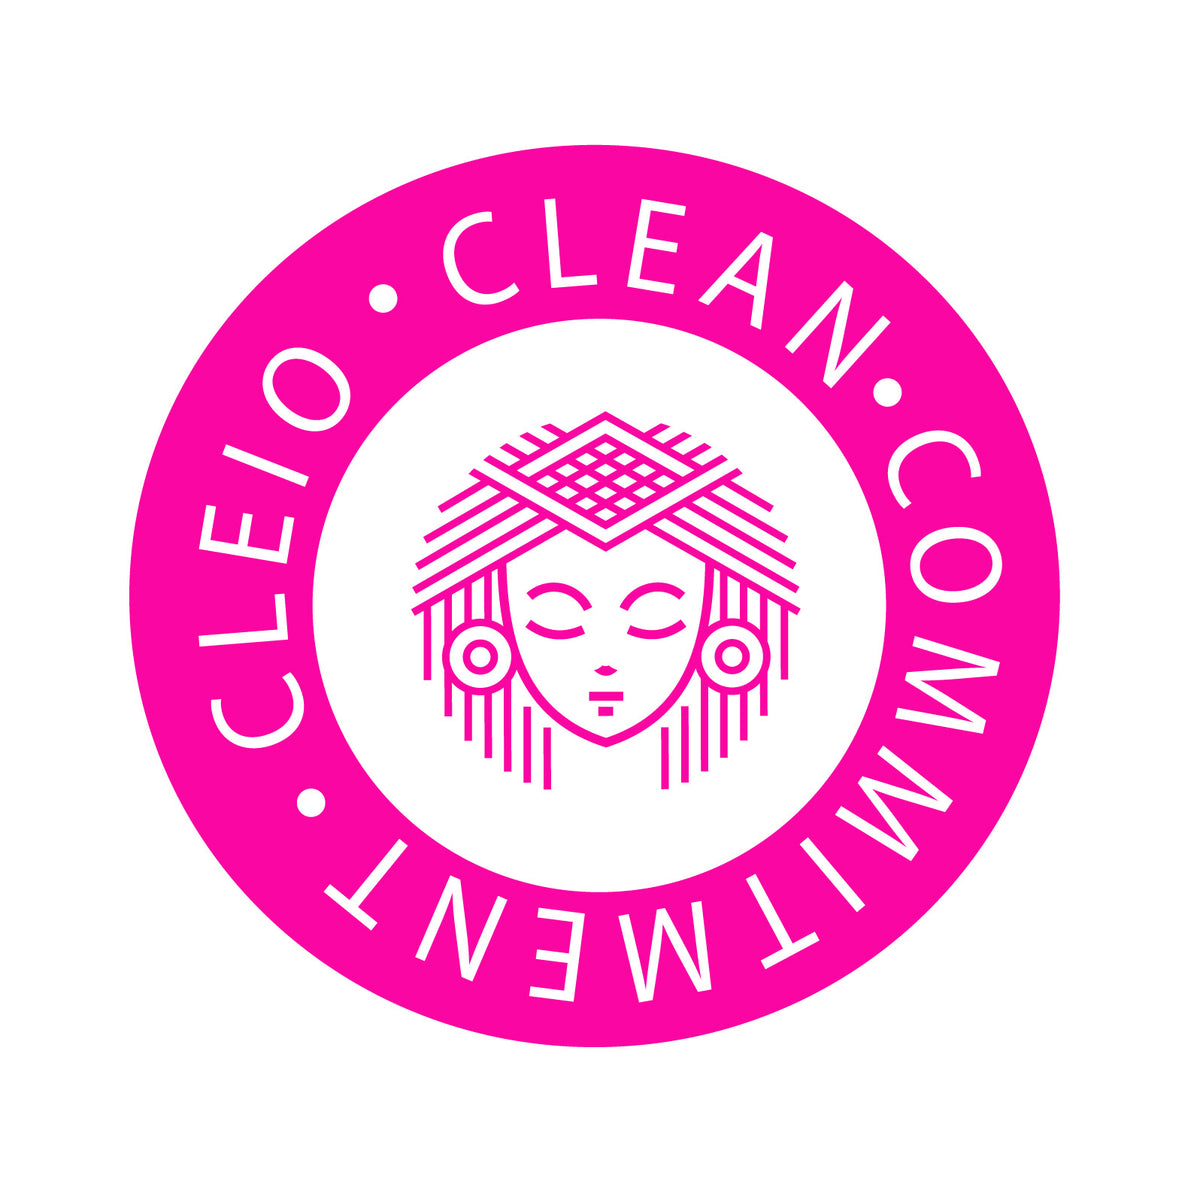 Cleio Clean Commitment